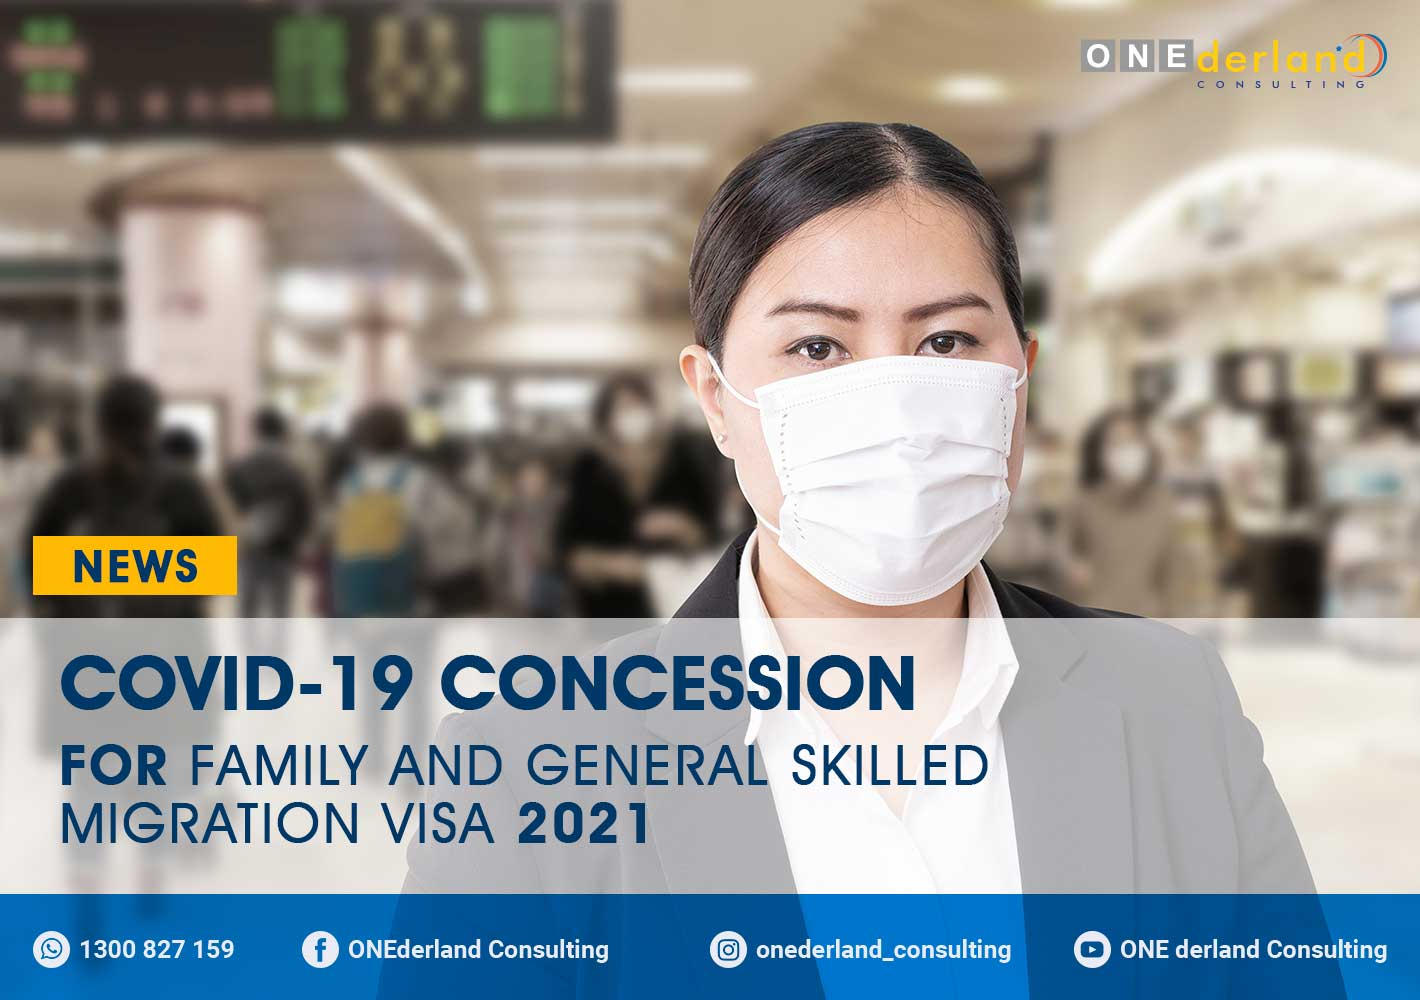 COVID-19 Concession for Family and General Skilled Migration Visa 2021